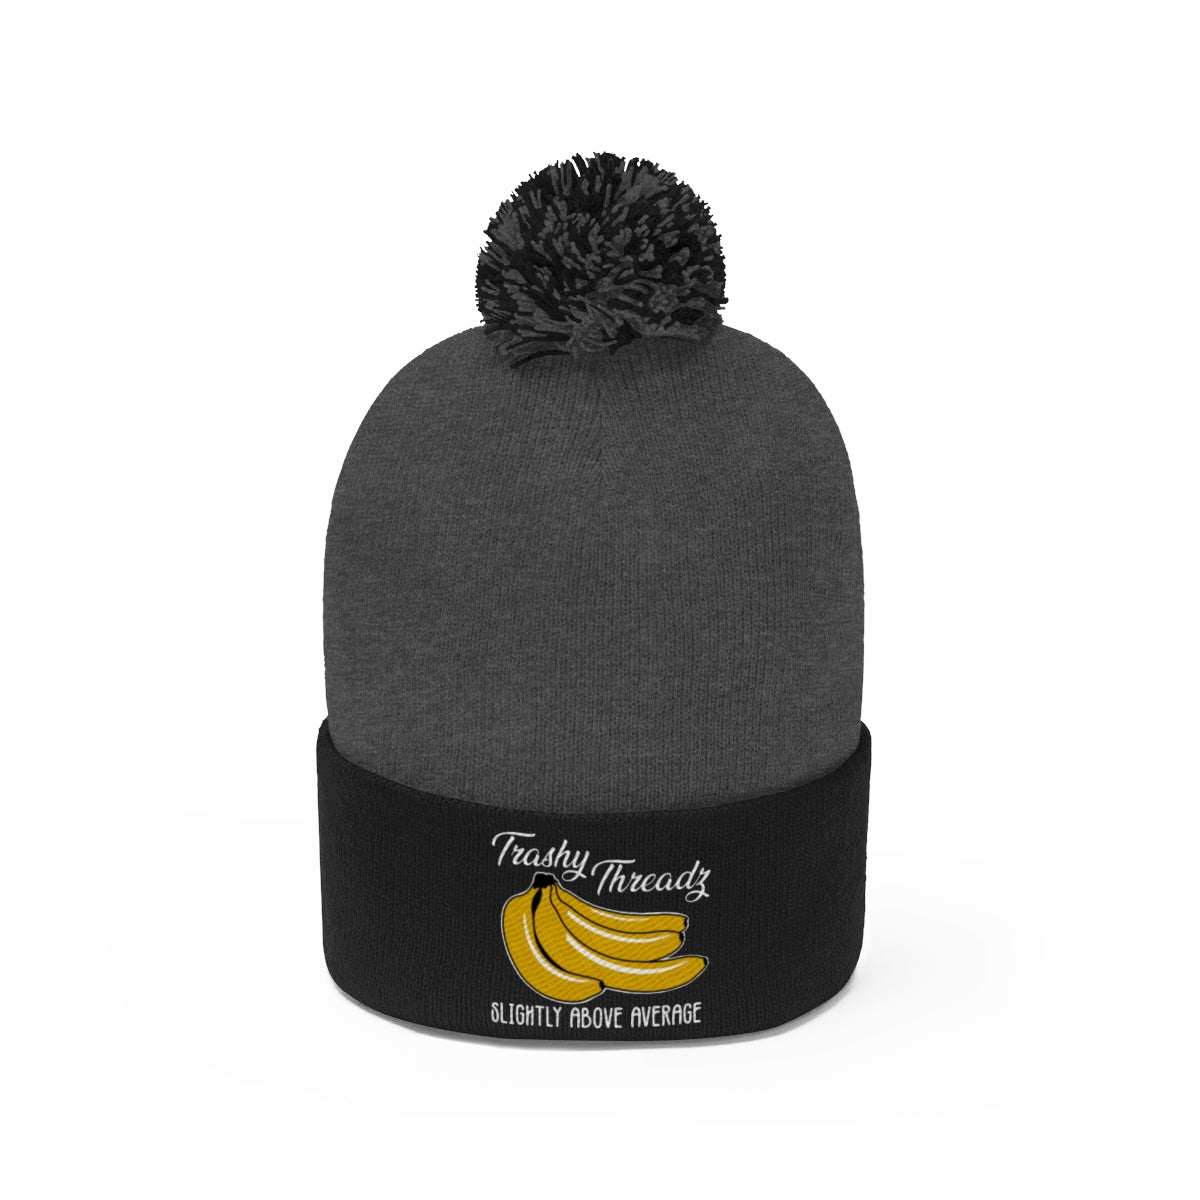 Slightly Above Average Pom Pom Beanie